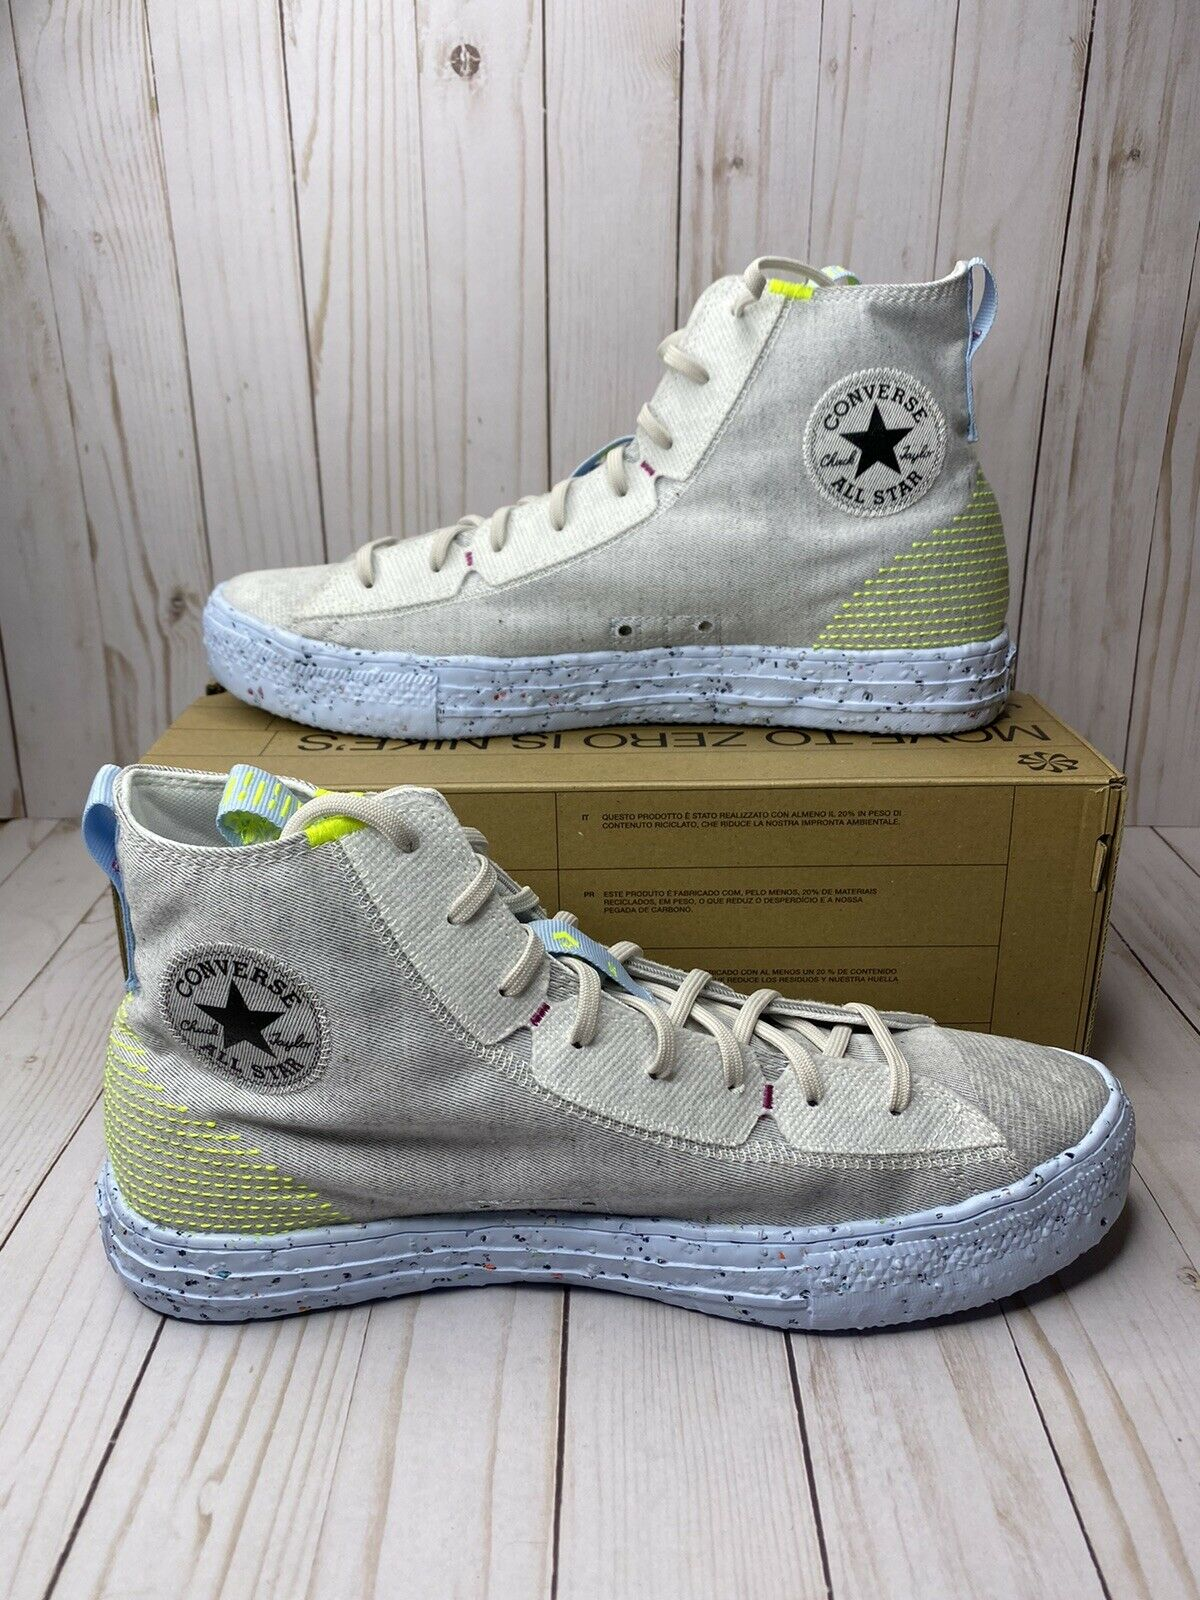 Converse Chuck Taylor All Star Crater White